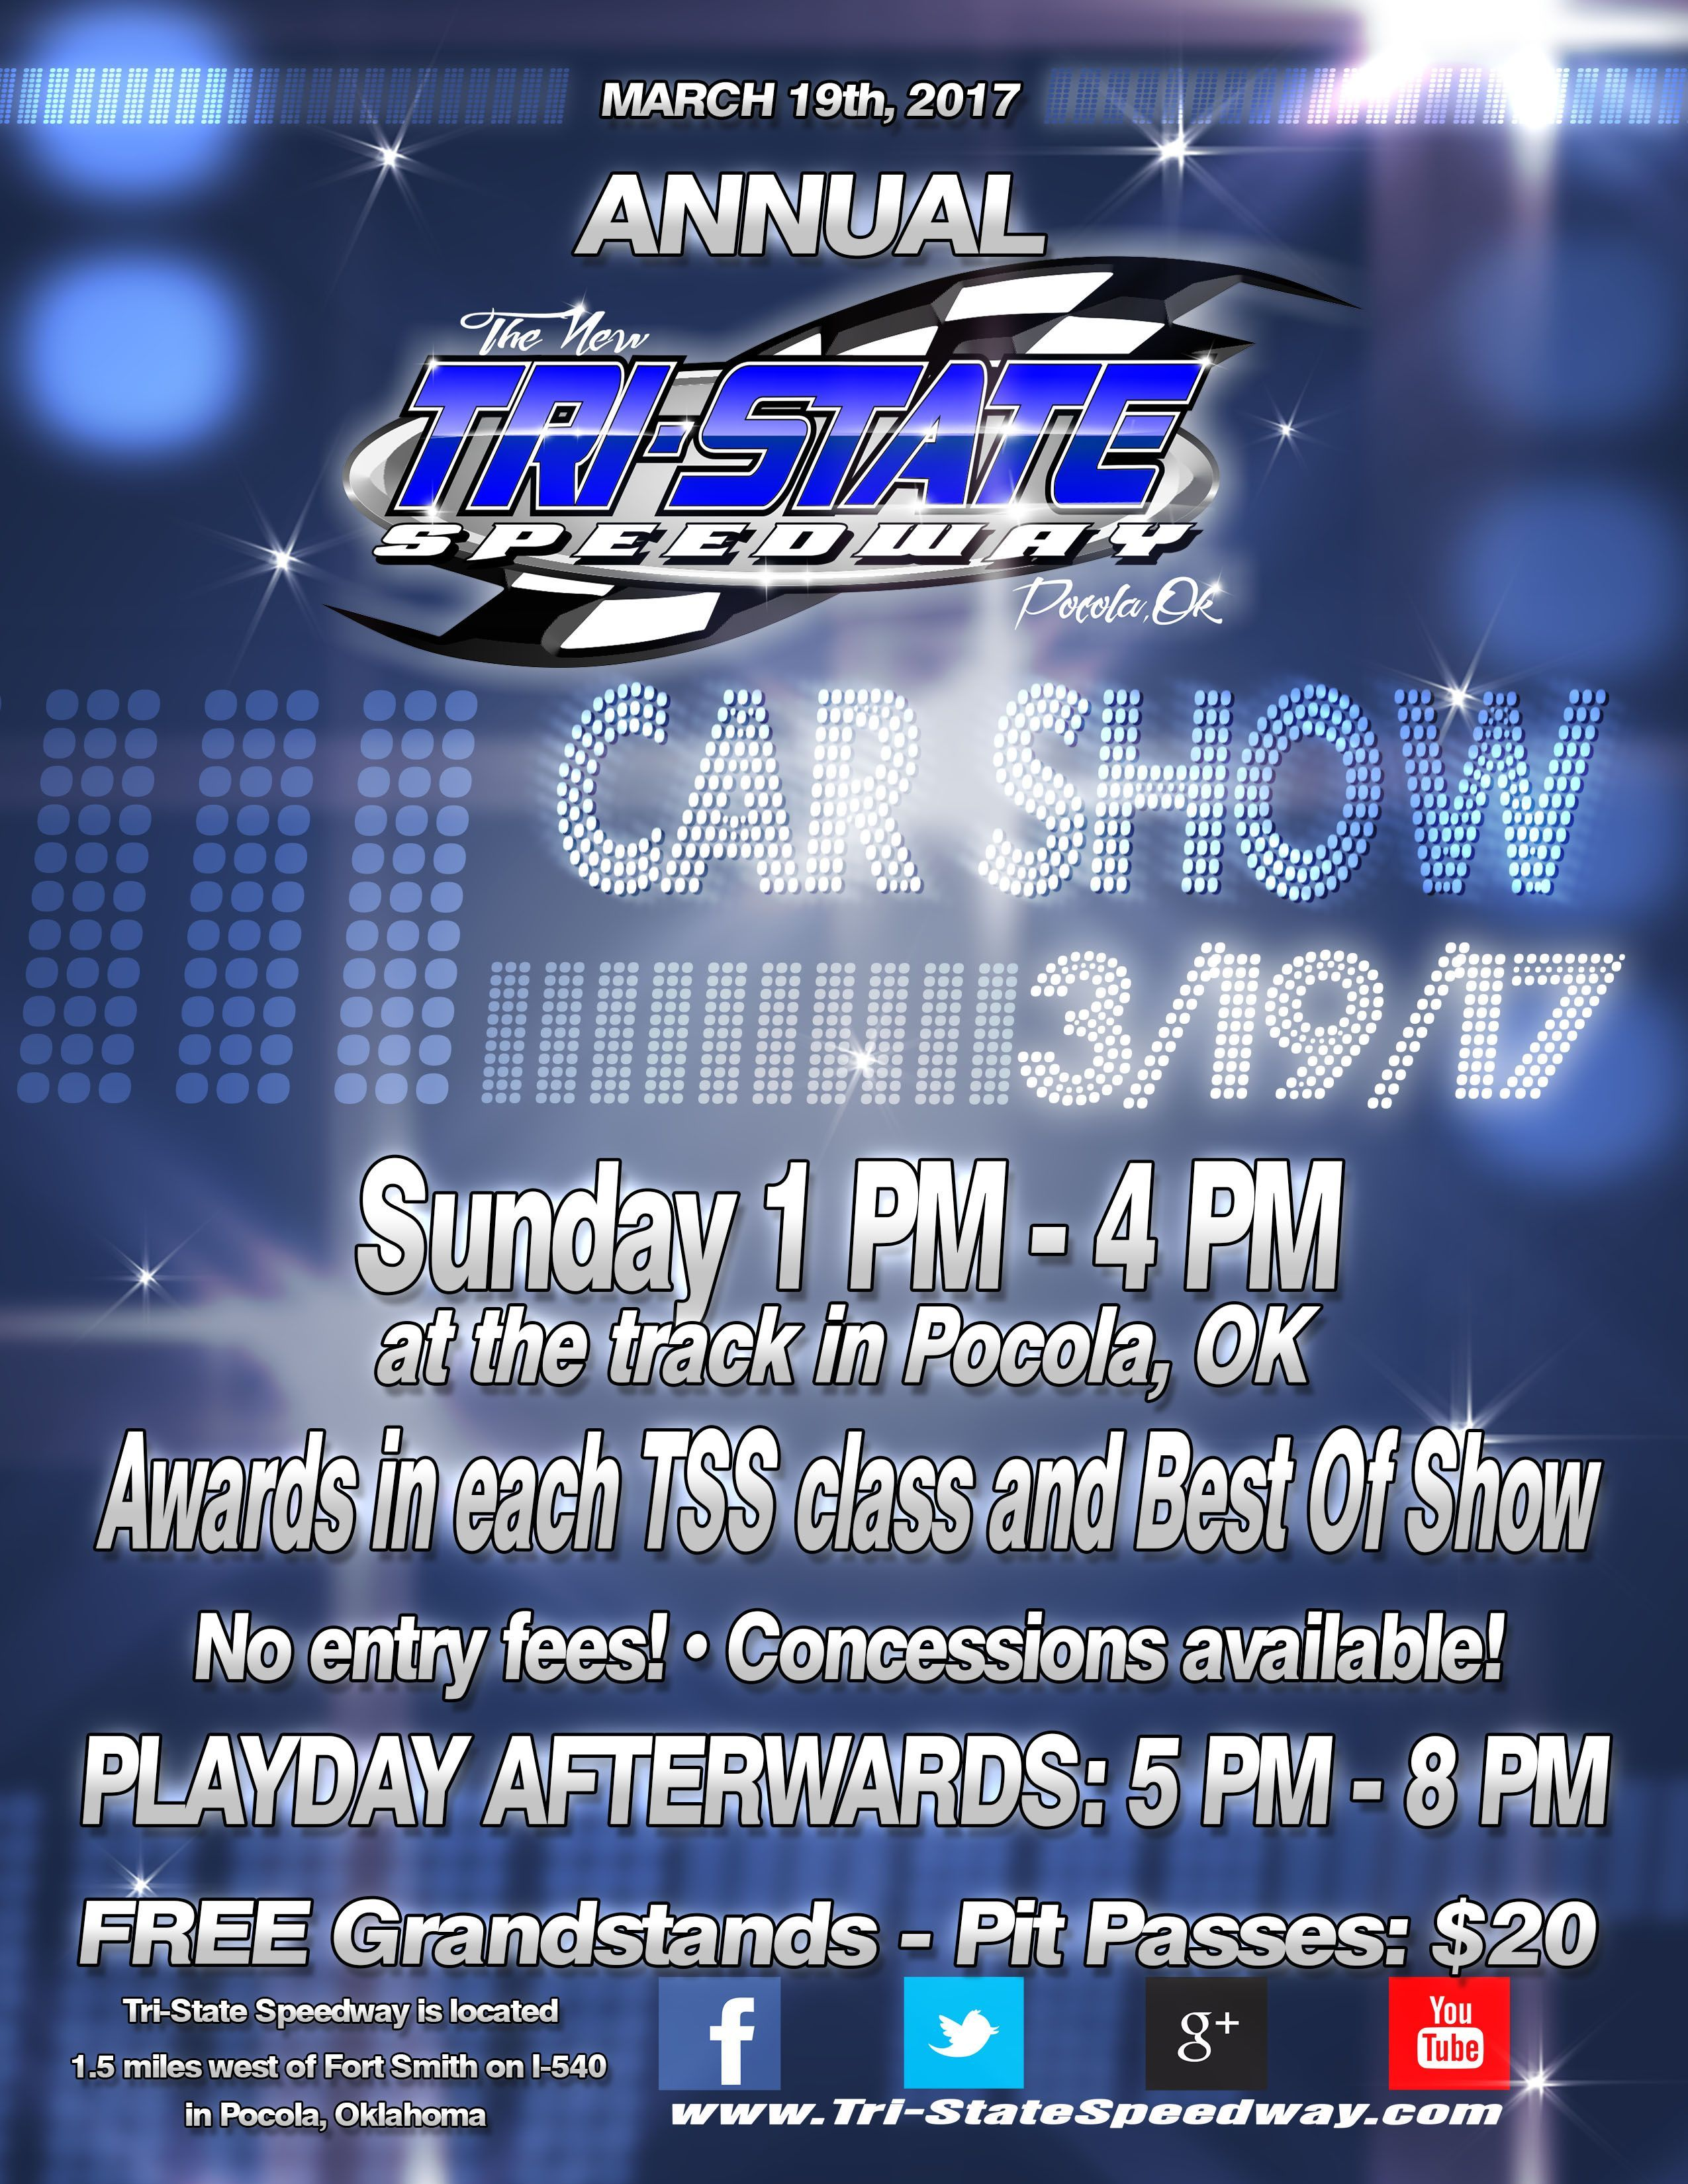 Annual Car Show and Play Day Date Changed